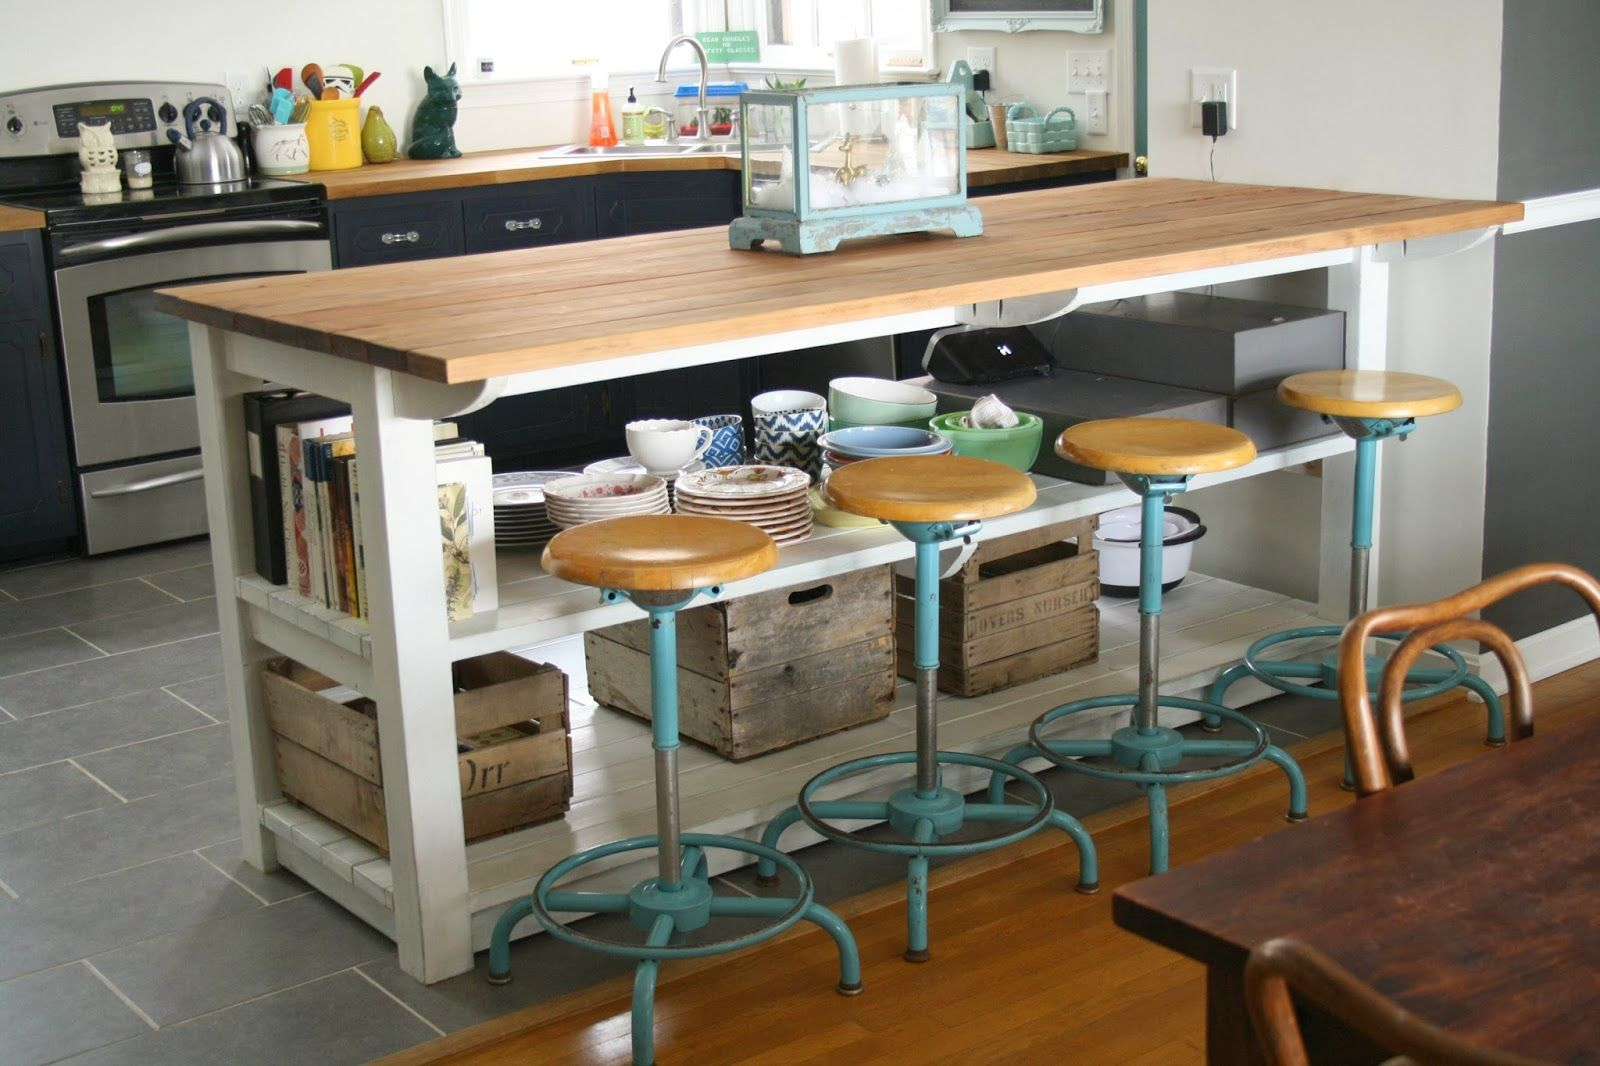 Primitive Amp Proper My Industrial Look Kitchen Island And